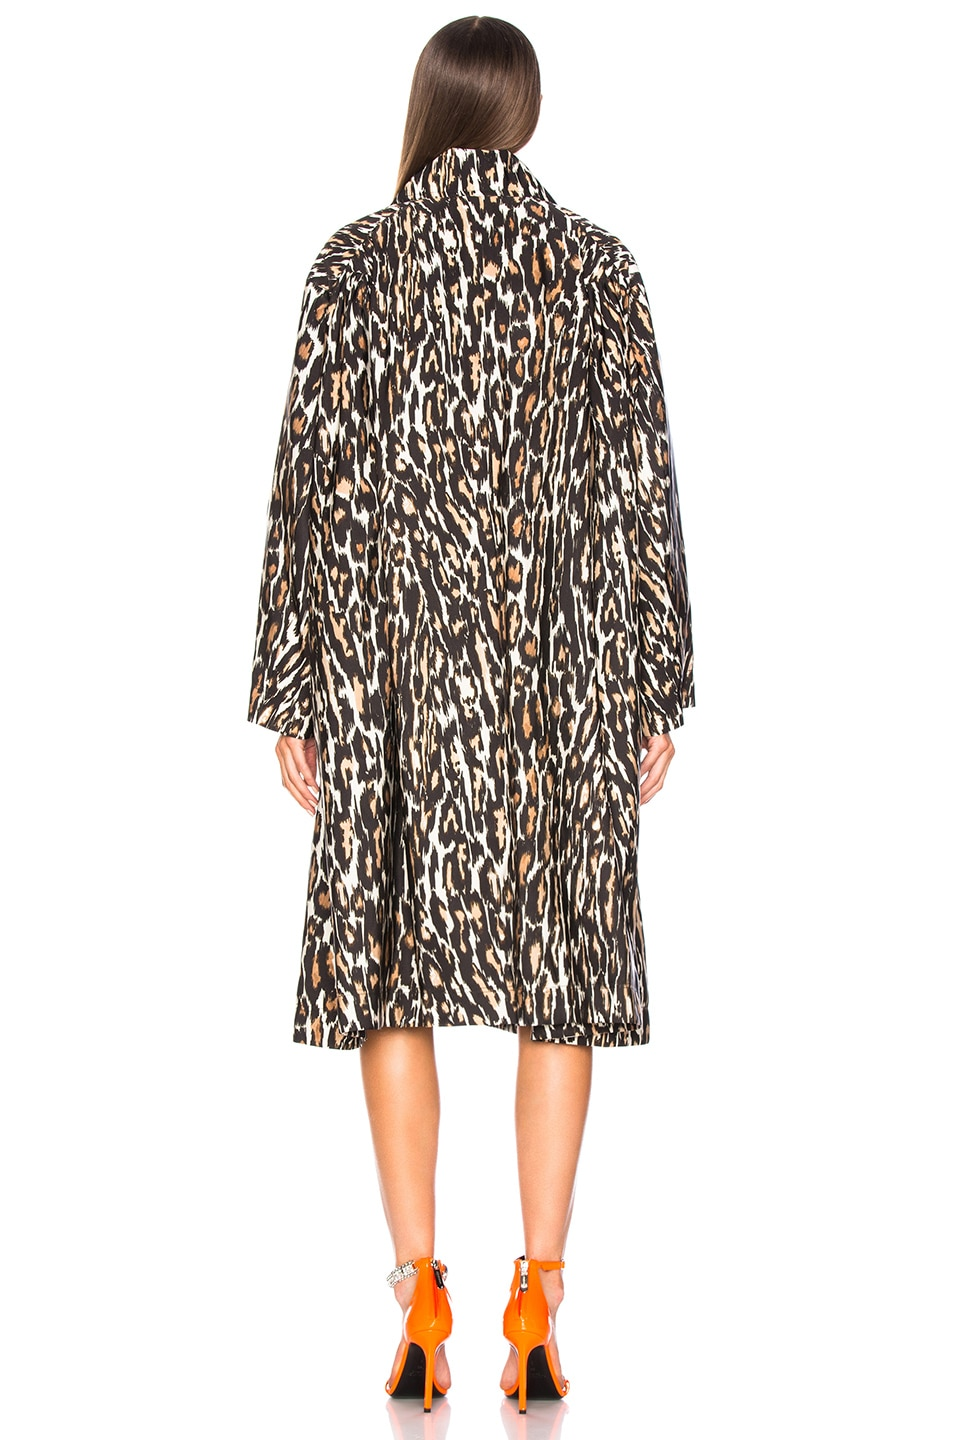 Image 5 of CALVIN KLEIN 205W39NYC Leopard Print Coat in Ivory, Brown & Black